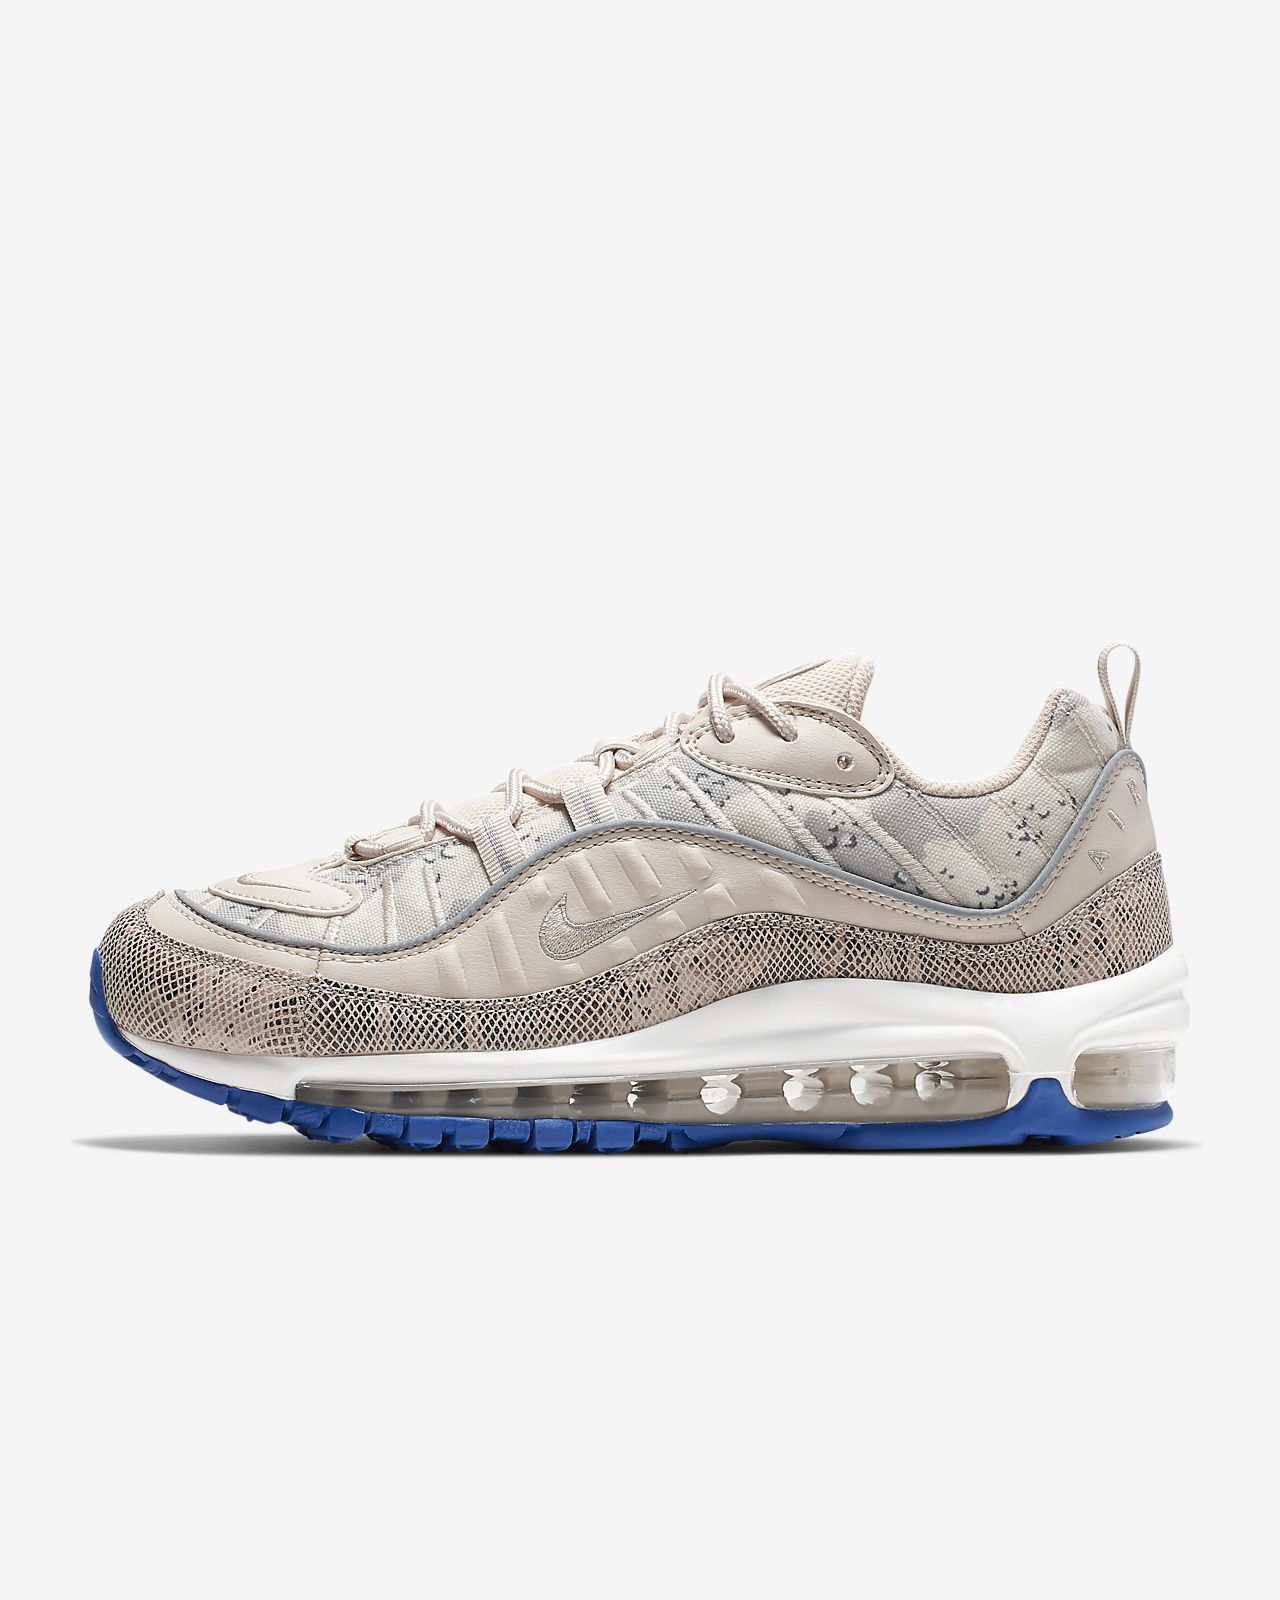 save off 9b376 372b4 Nike Air Max 98 Premium Camo Women's Shoe